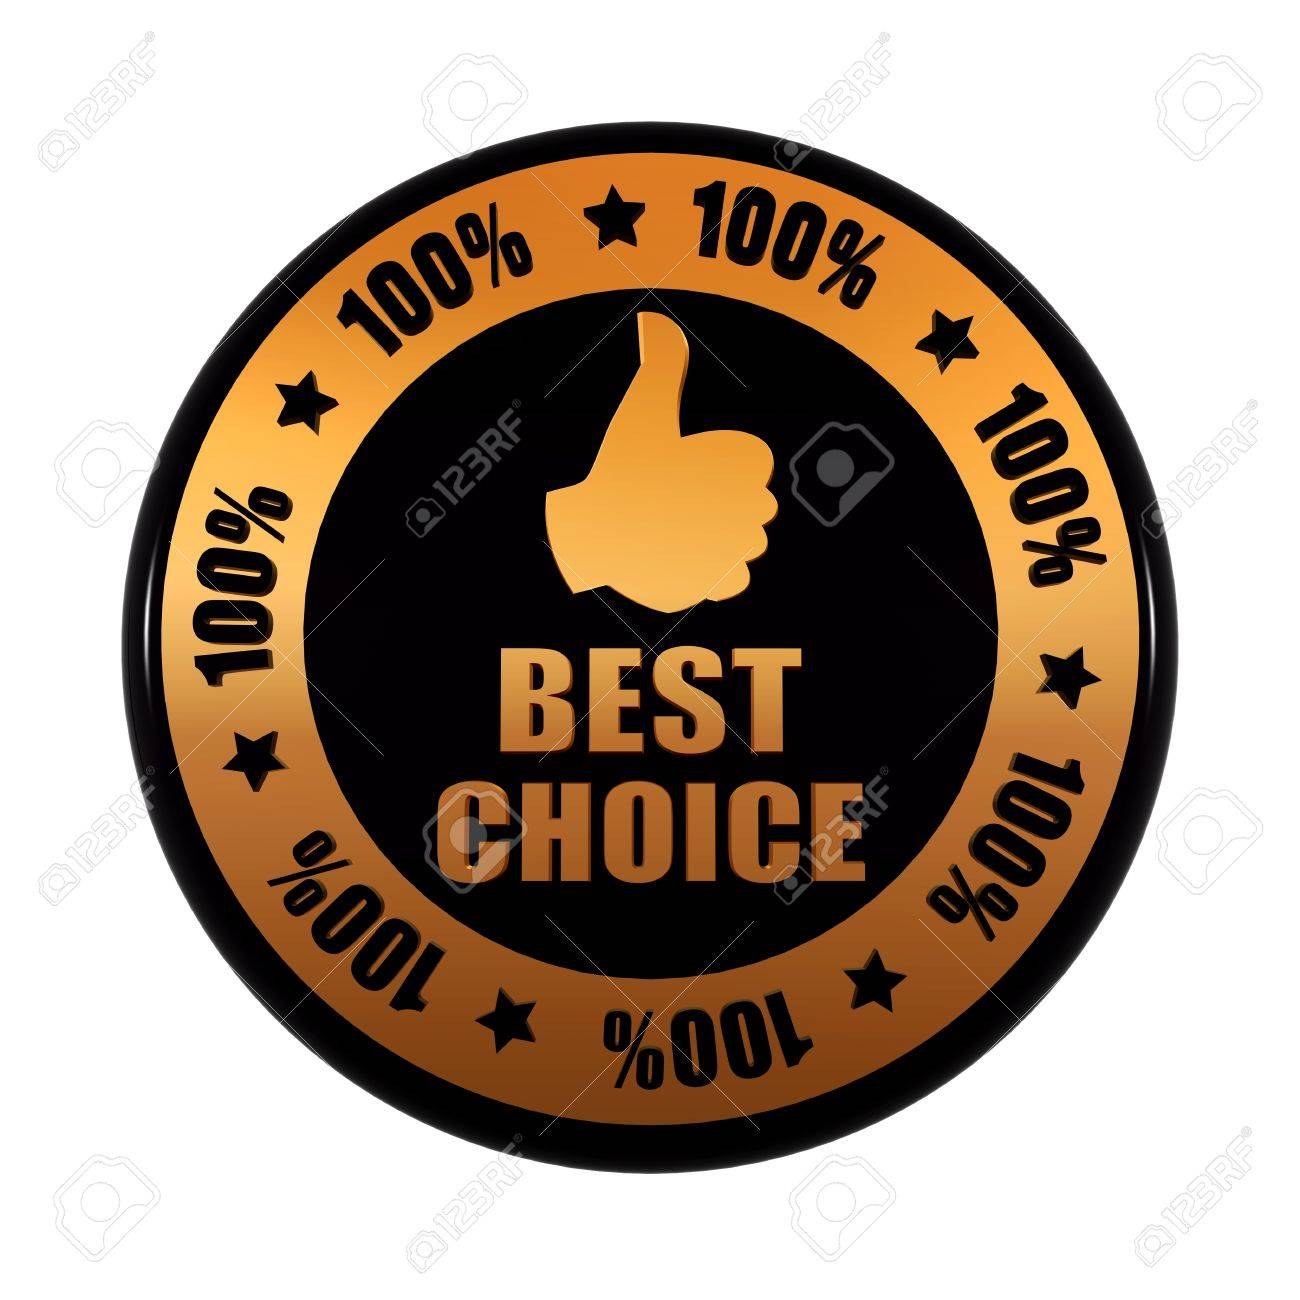 Best choice 100 percentages and thumb up sign text and symbol best choice 100 percentages and thumb up sign text and symbol in 3d golden black buycottarizona Image collections